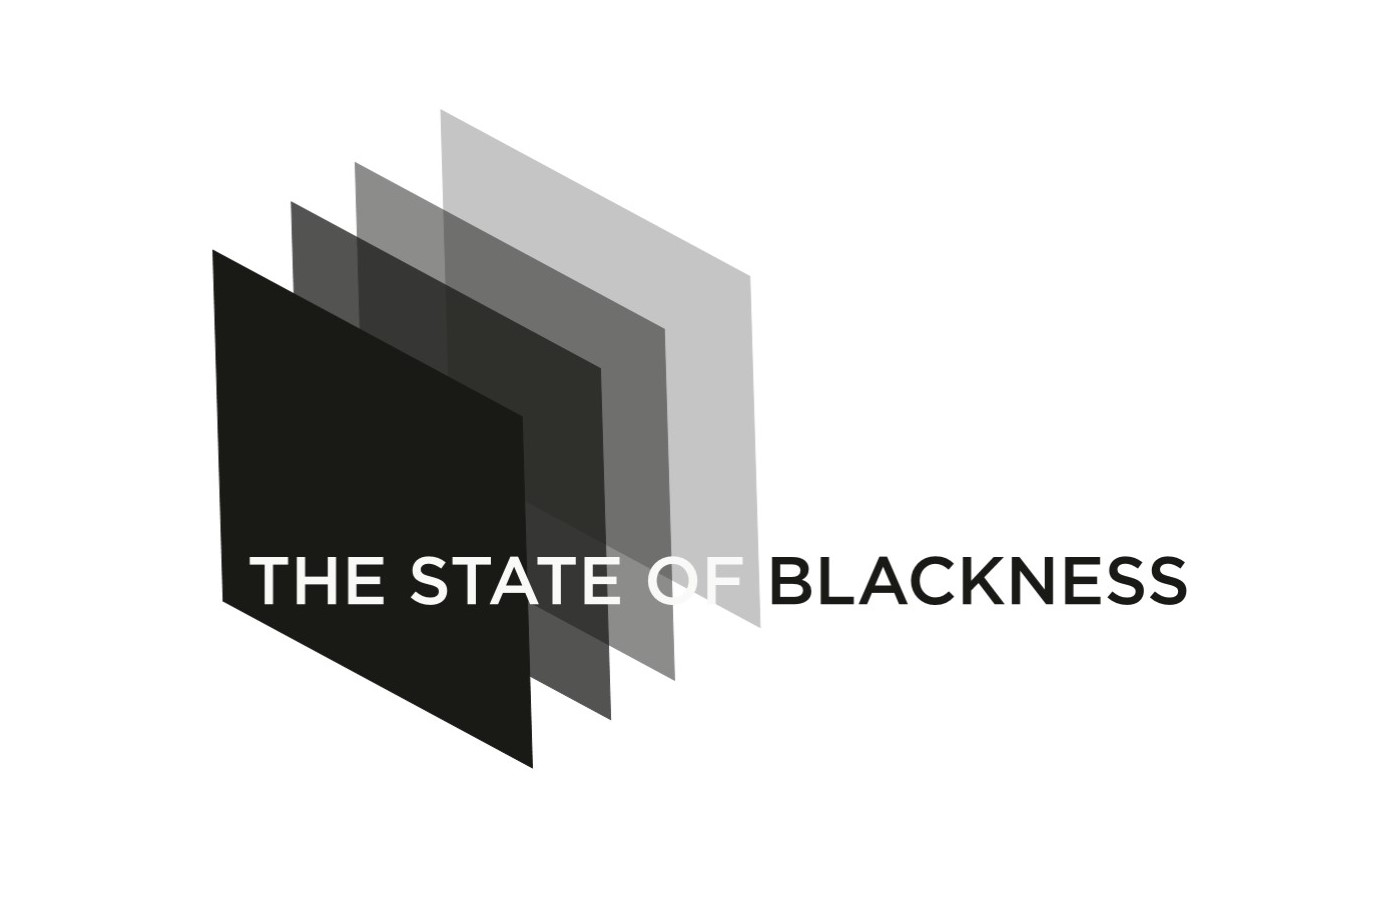 The State of Blackness Logo - text and a gradient in stacked rectangles from black to gray